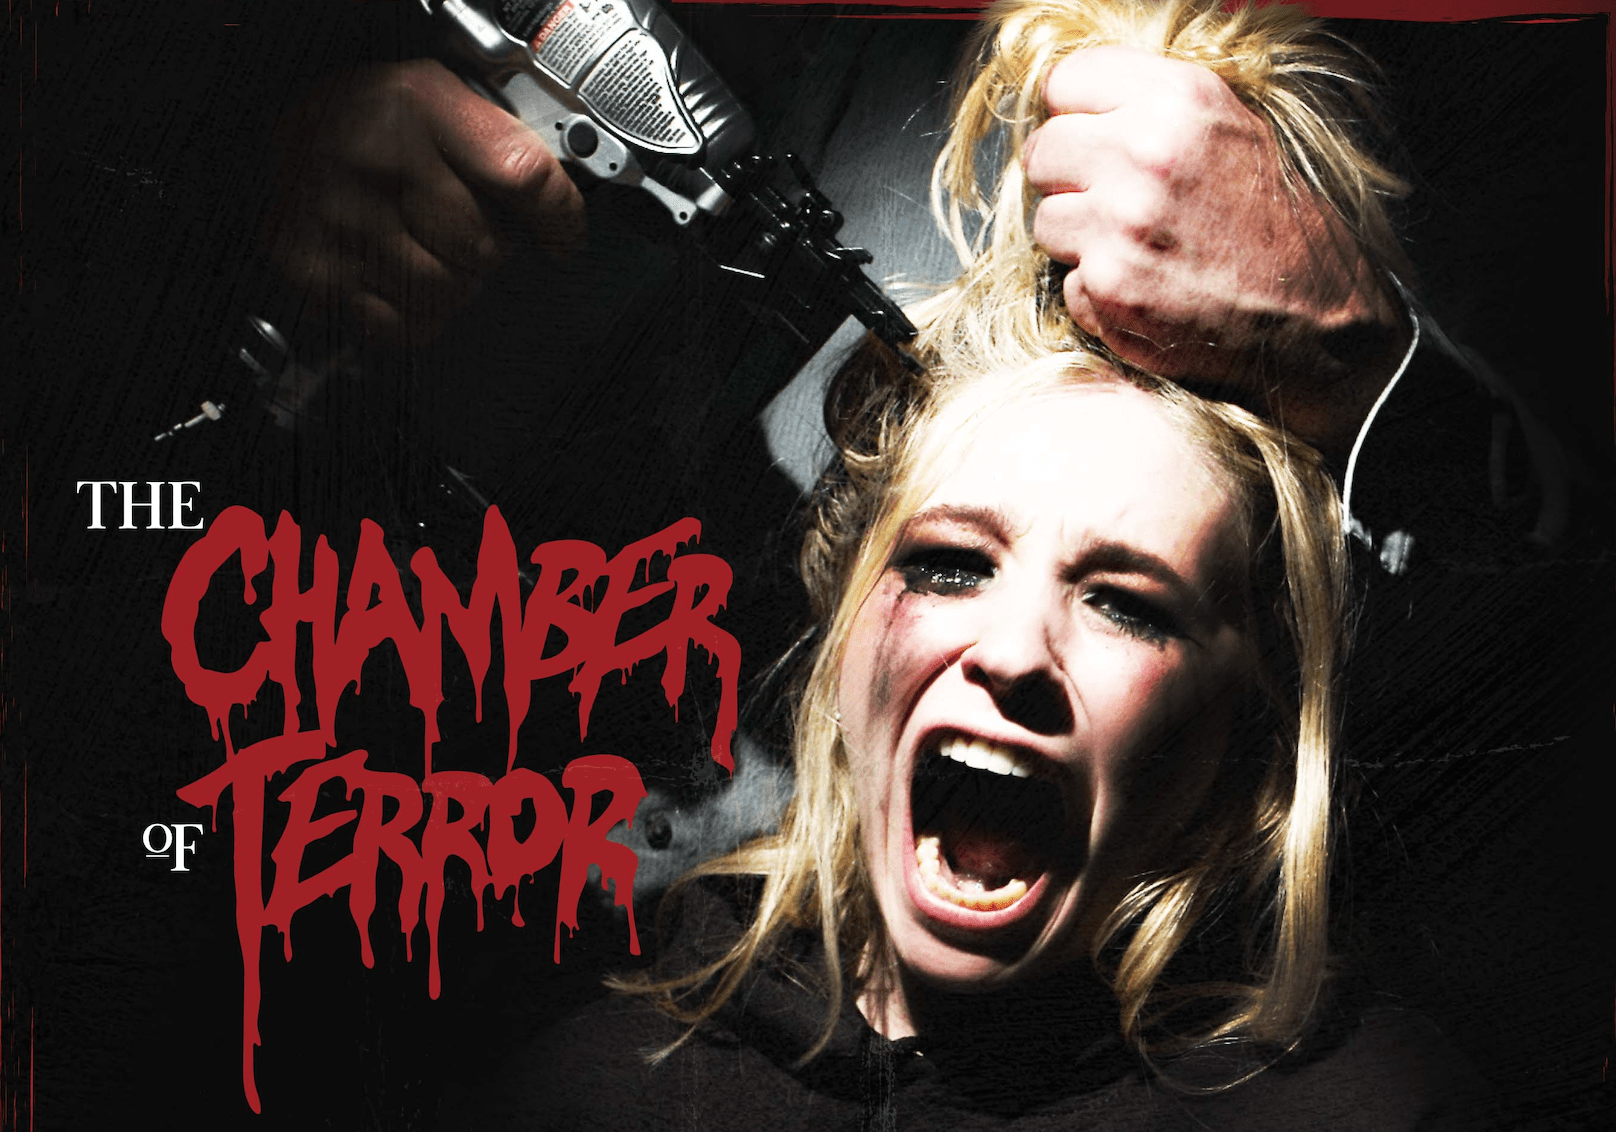 The Chamber of Terror